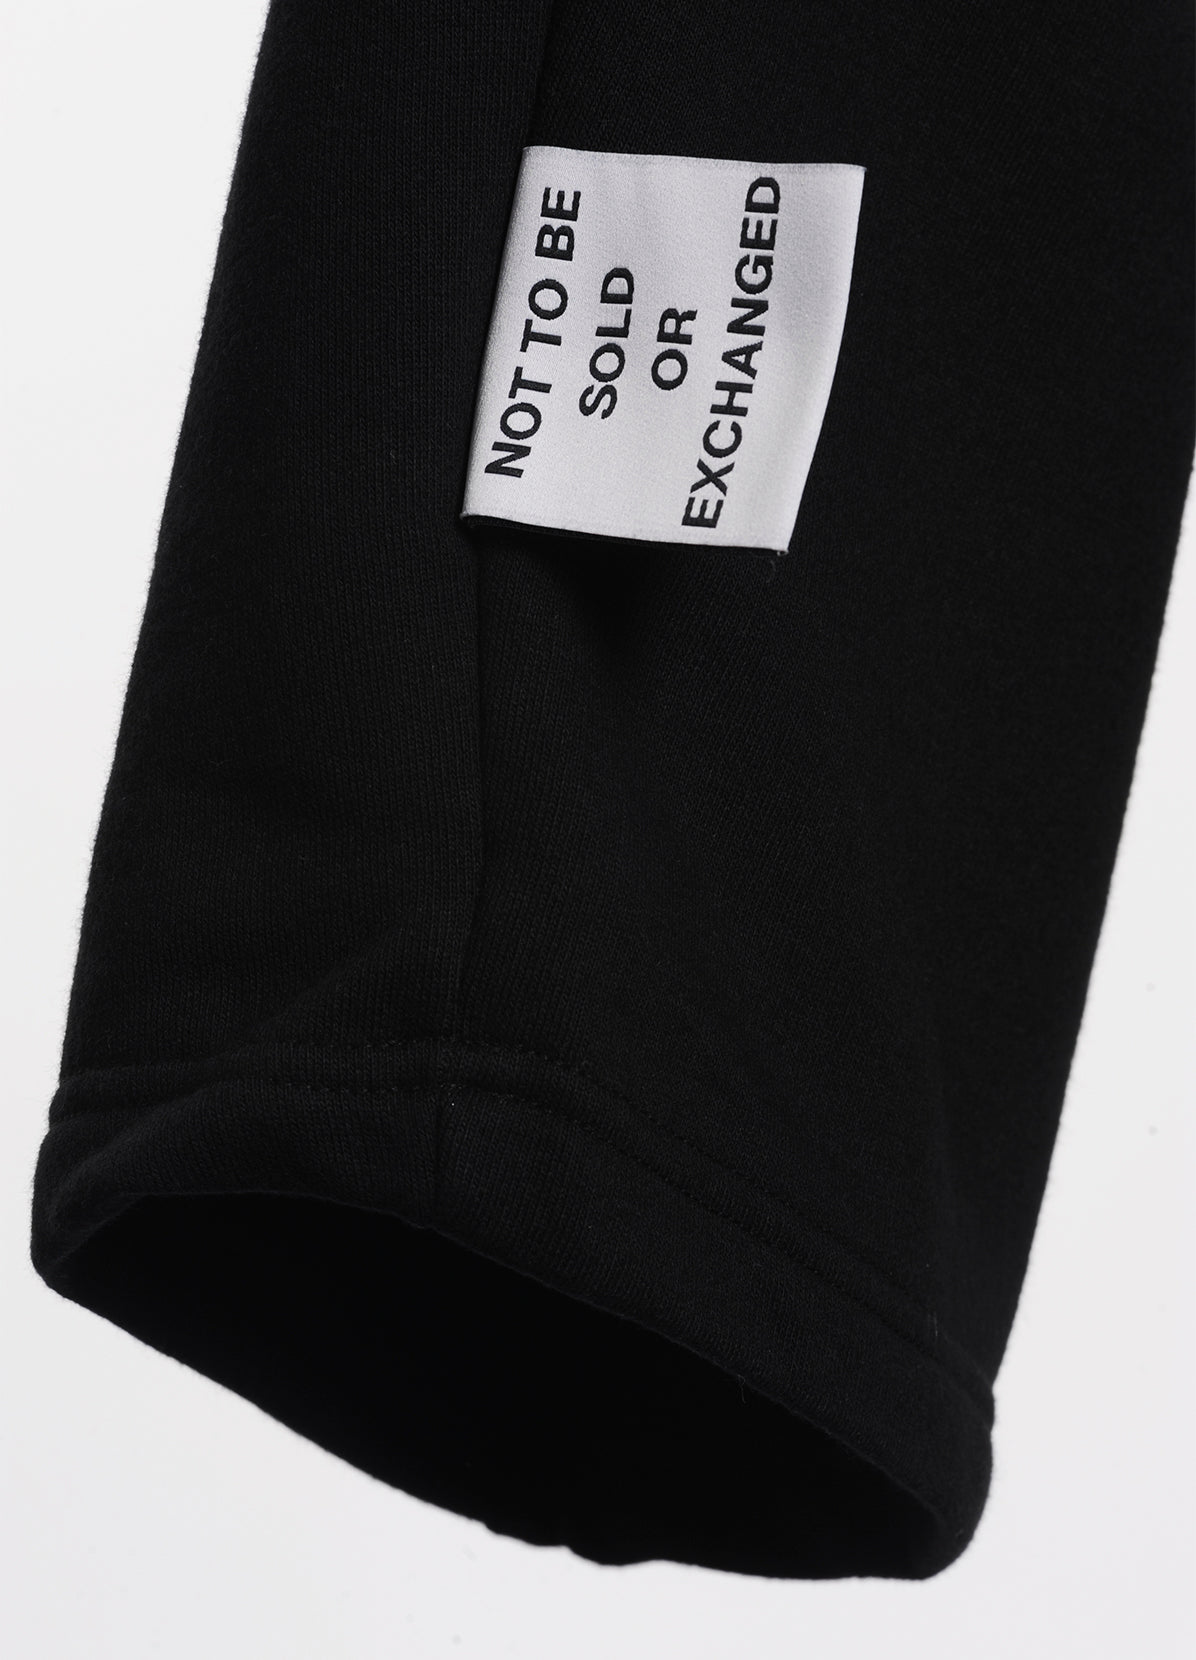 COTTON SWEAT PANTS THAT IS CONSTRUCTED INTO A SWEATER